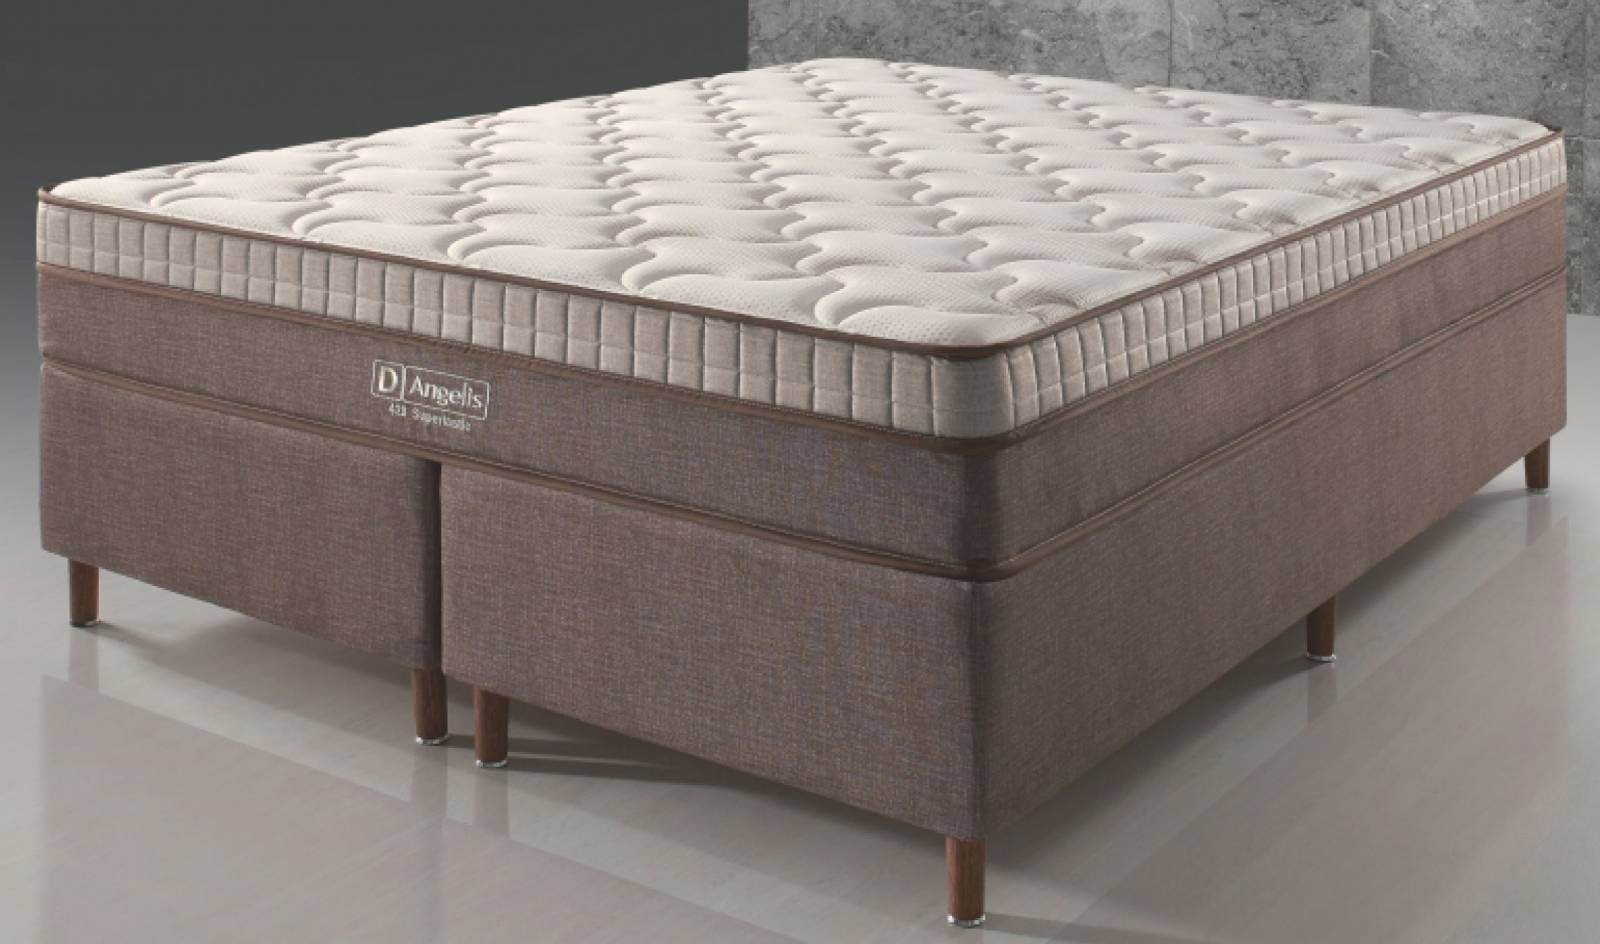 Conjunto Cama Box DG 428 D'Angelis - All Home